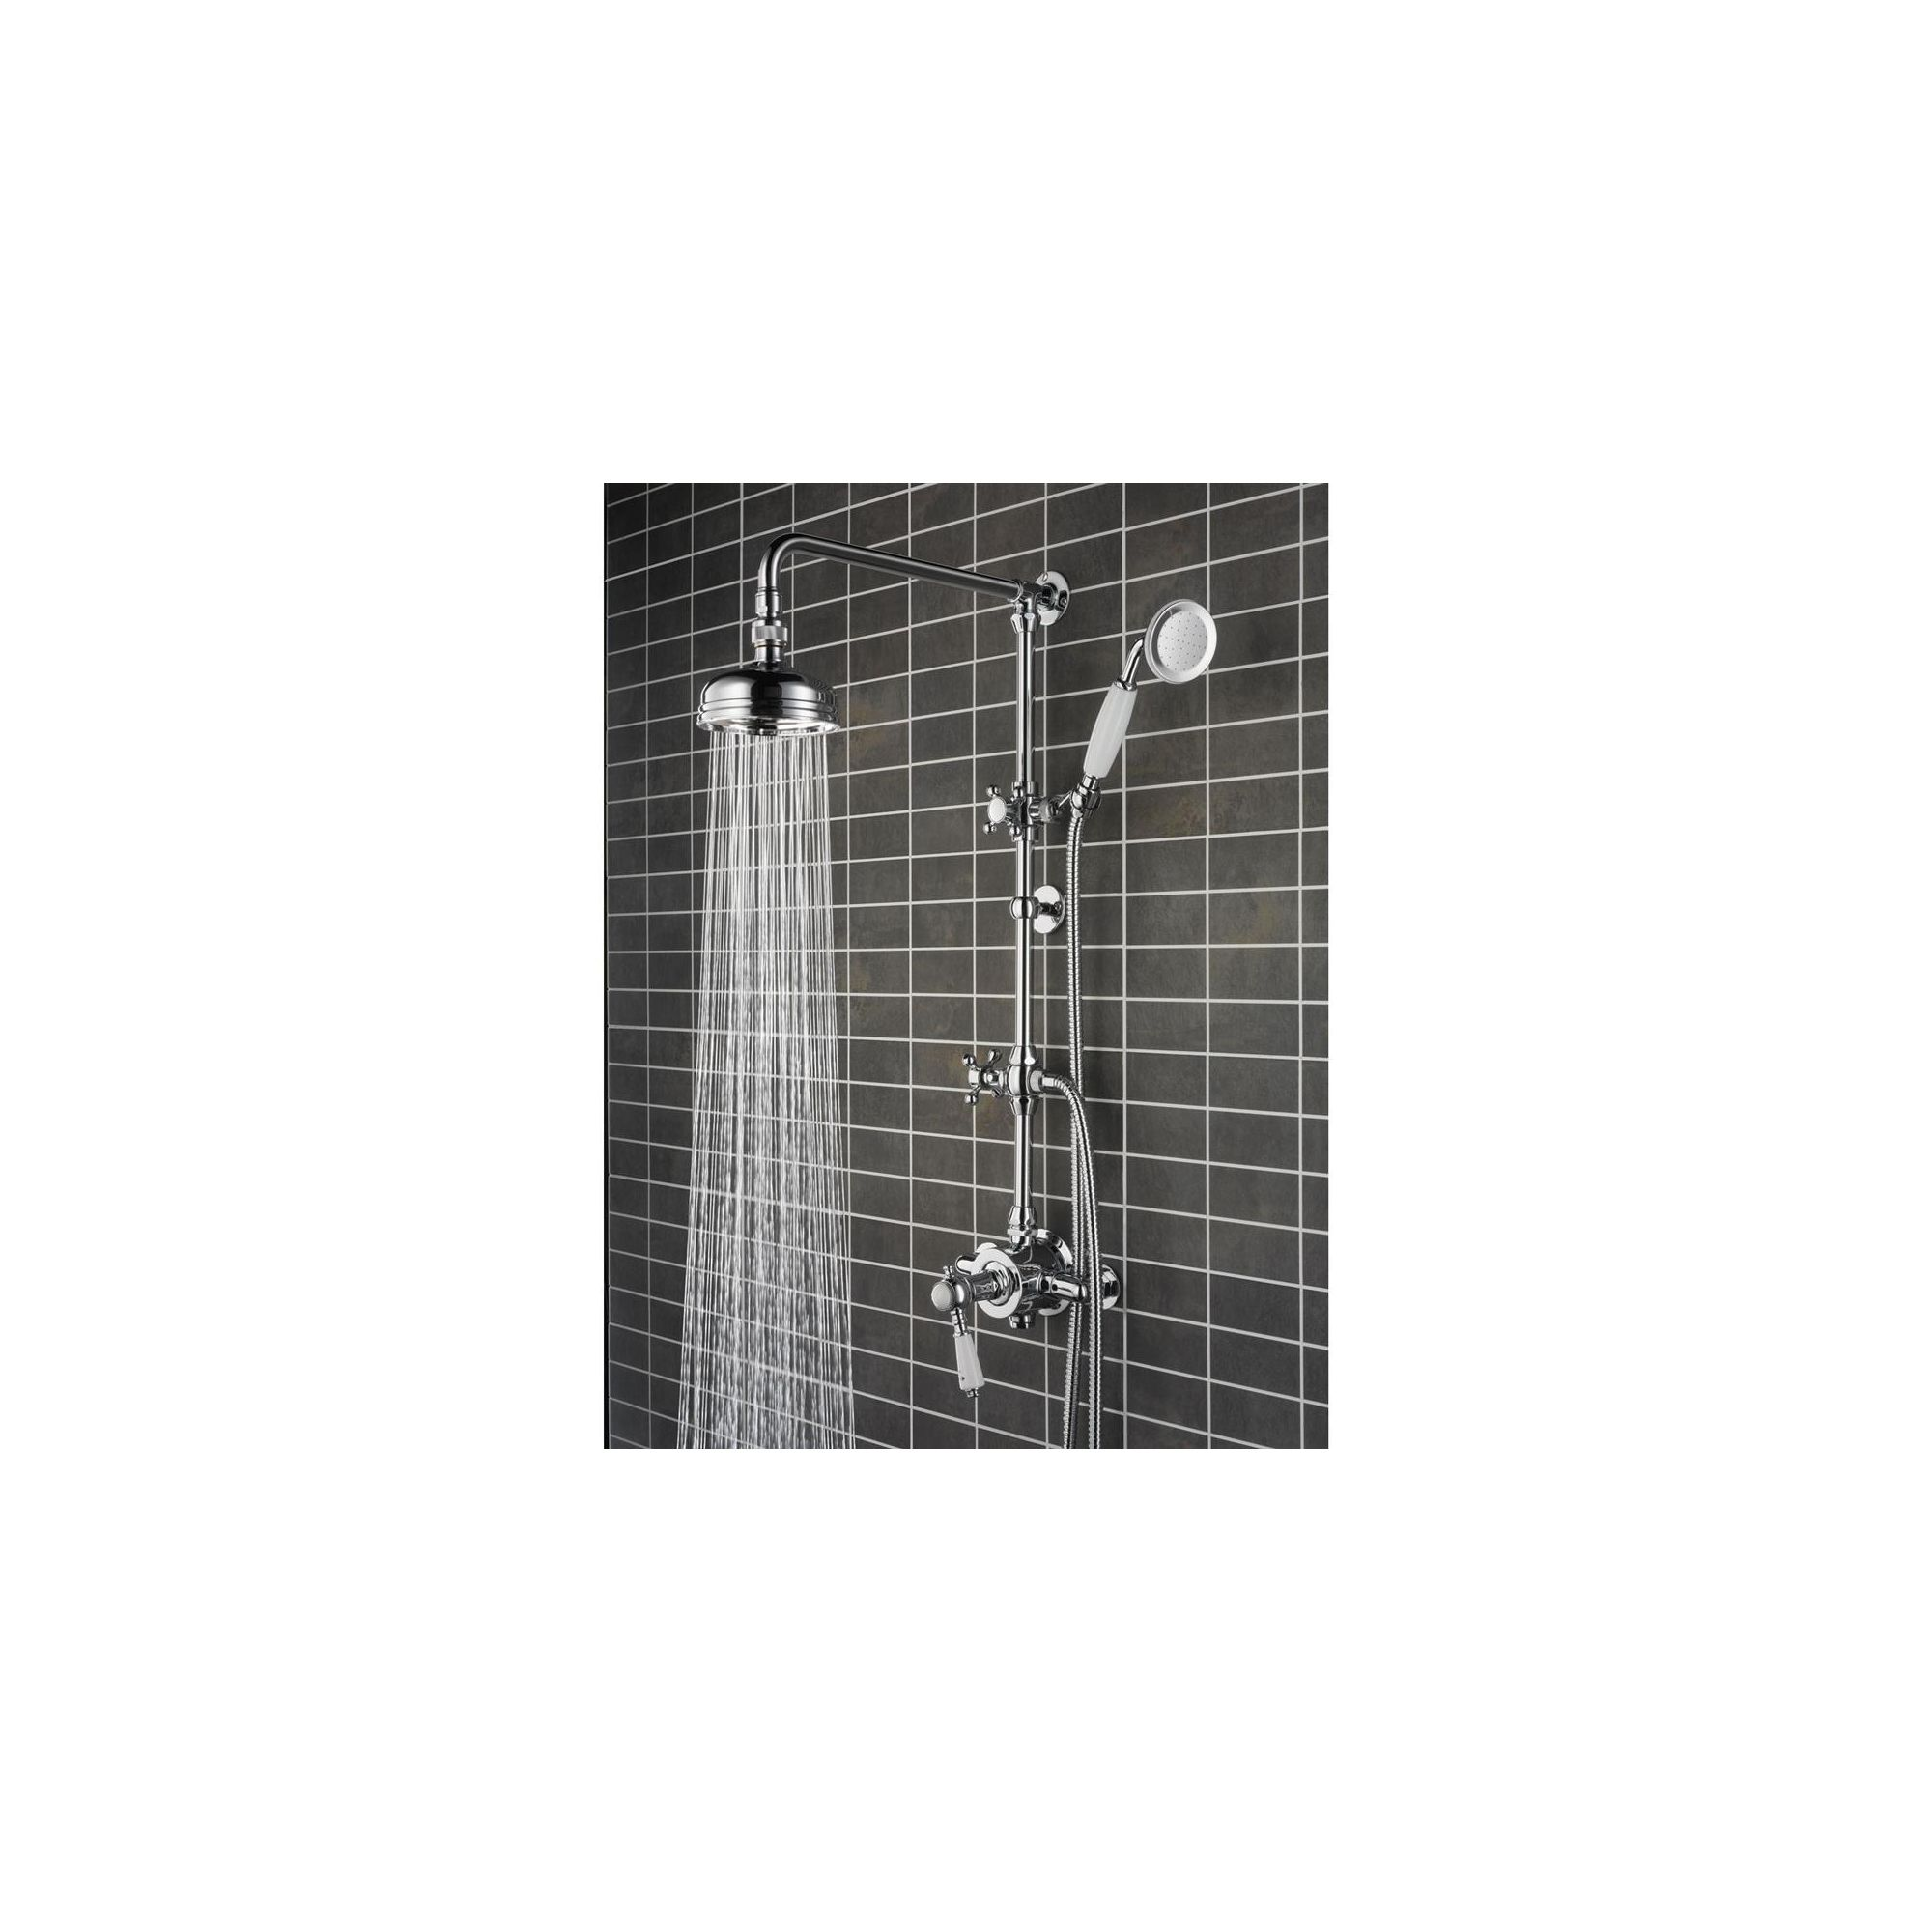 Bristan Cardinal Thermostatic Surface Mounted Shower with Rigid Riser and Diverter to Shower Handset Chrome Plated at Tesco Direct